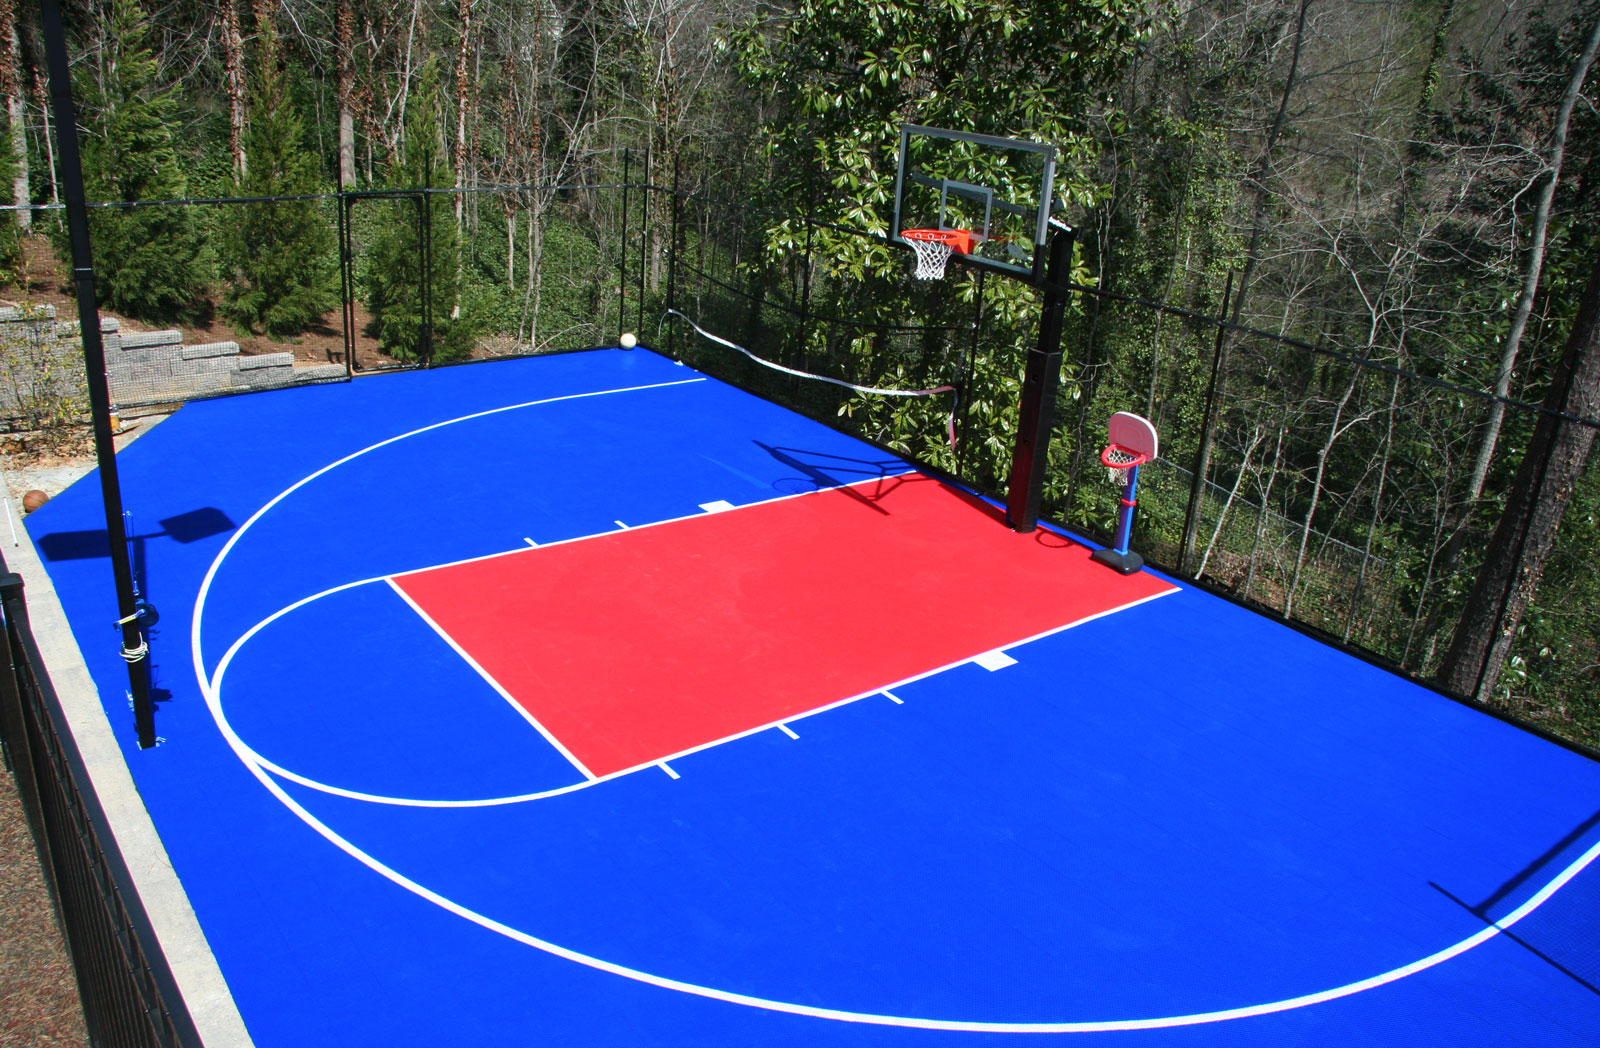 Backyard basketball half court in bright blue and red